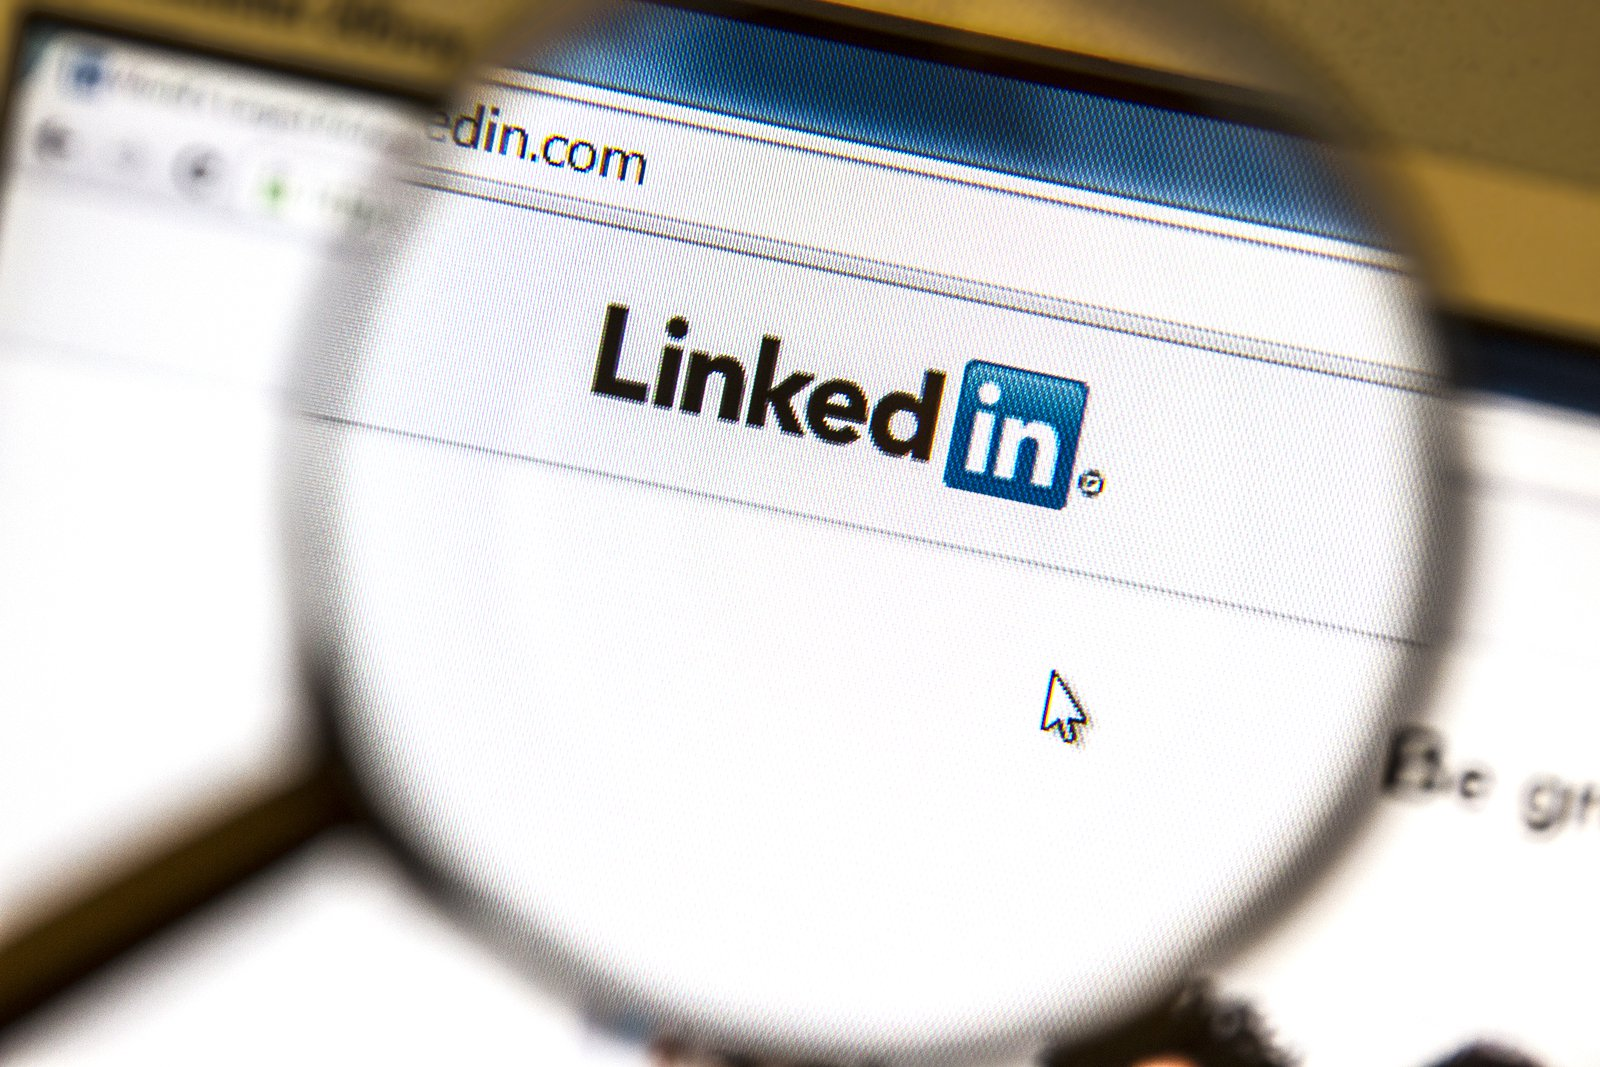 Tips for more clicks and engagement on LinkedIn